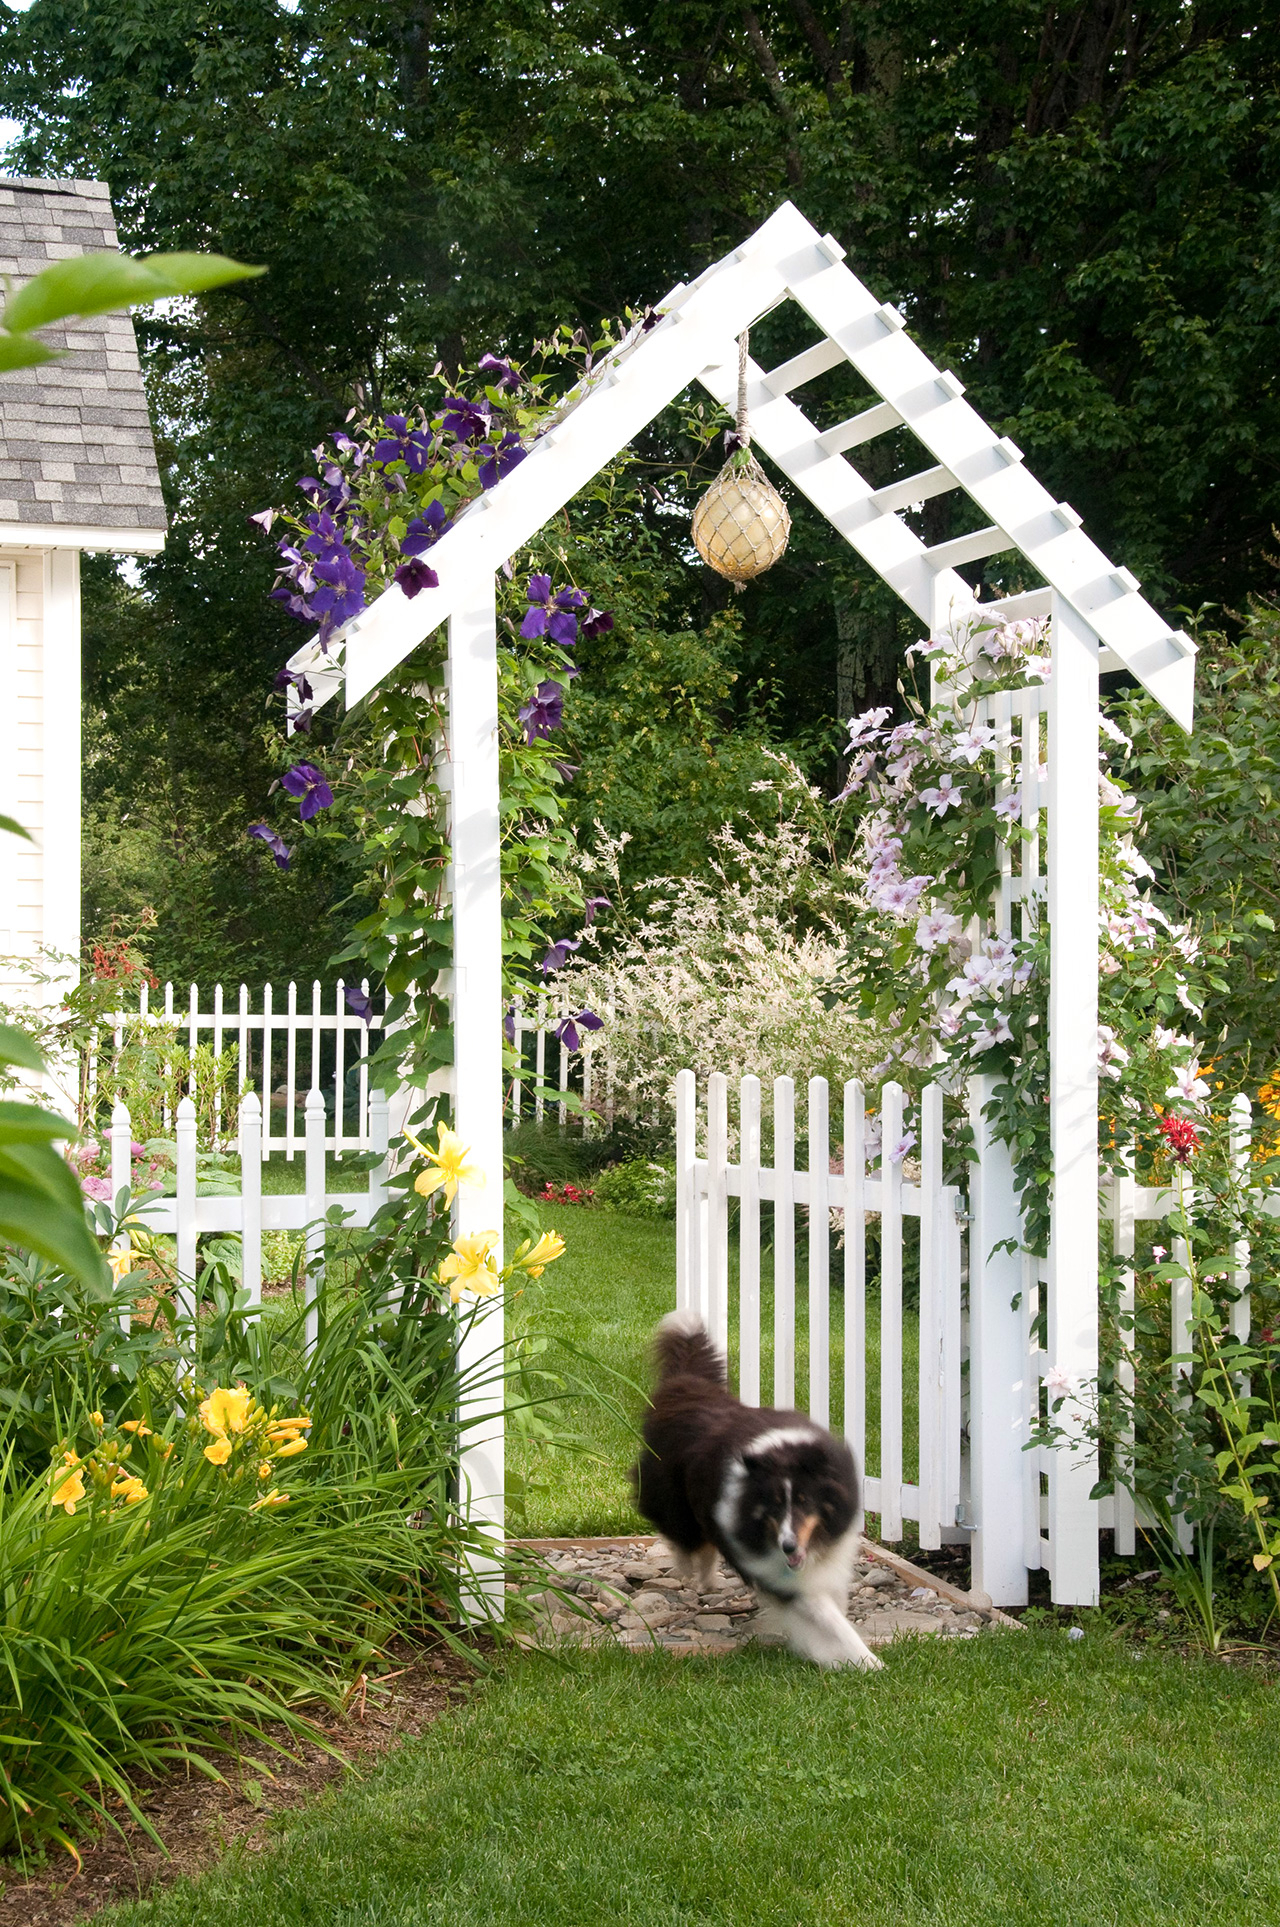 20 Landscaping Ideas To Perk Up Your Backyard regarding 10 Smart Concepts of How to Craft Backyard Landscaping Ideas For Dogs